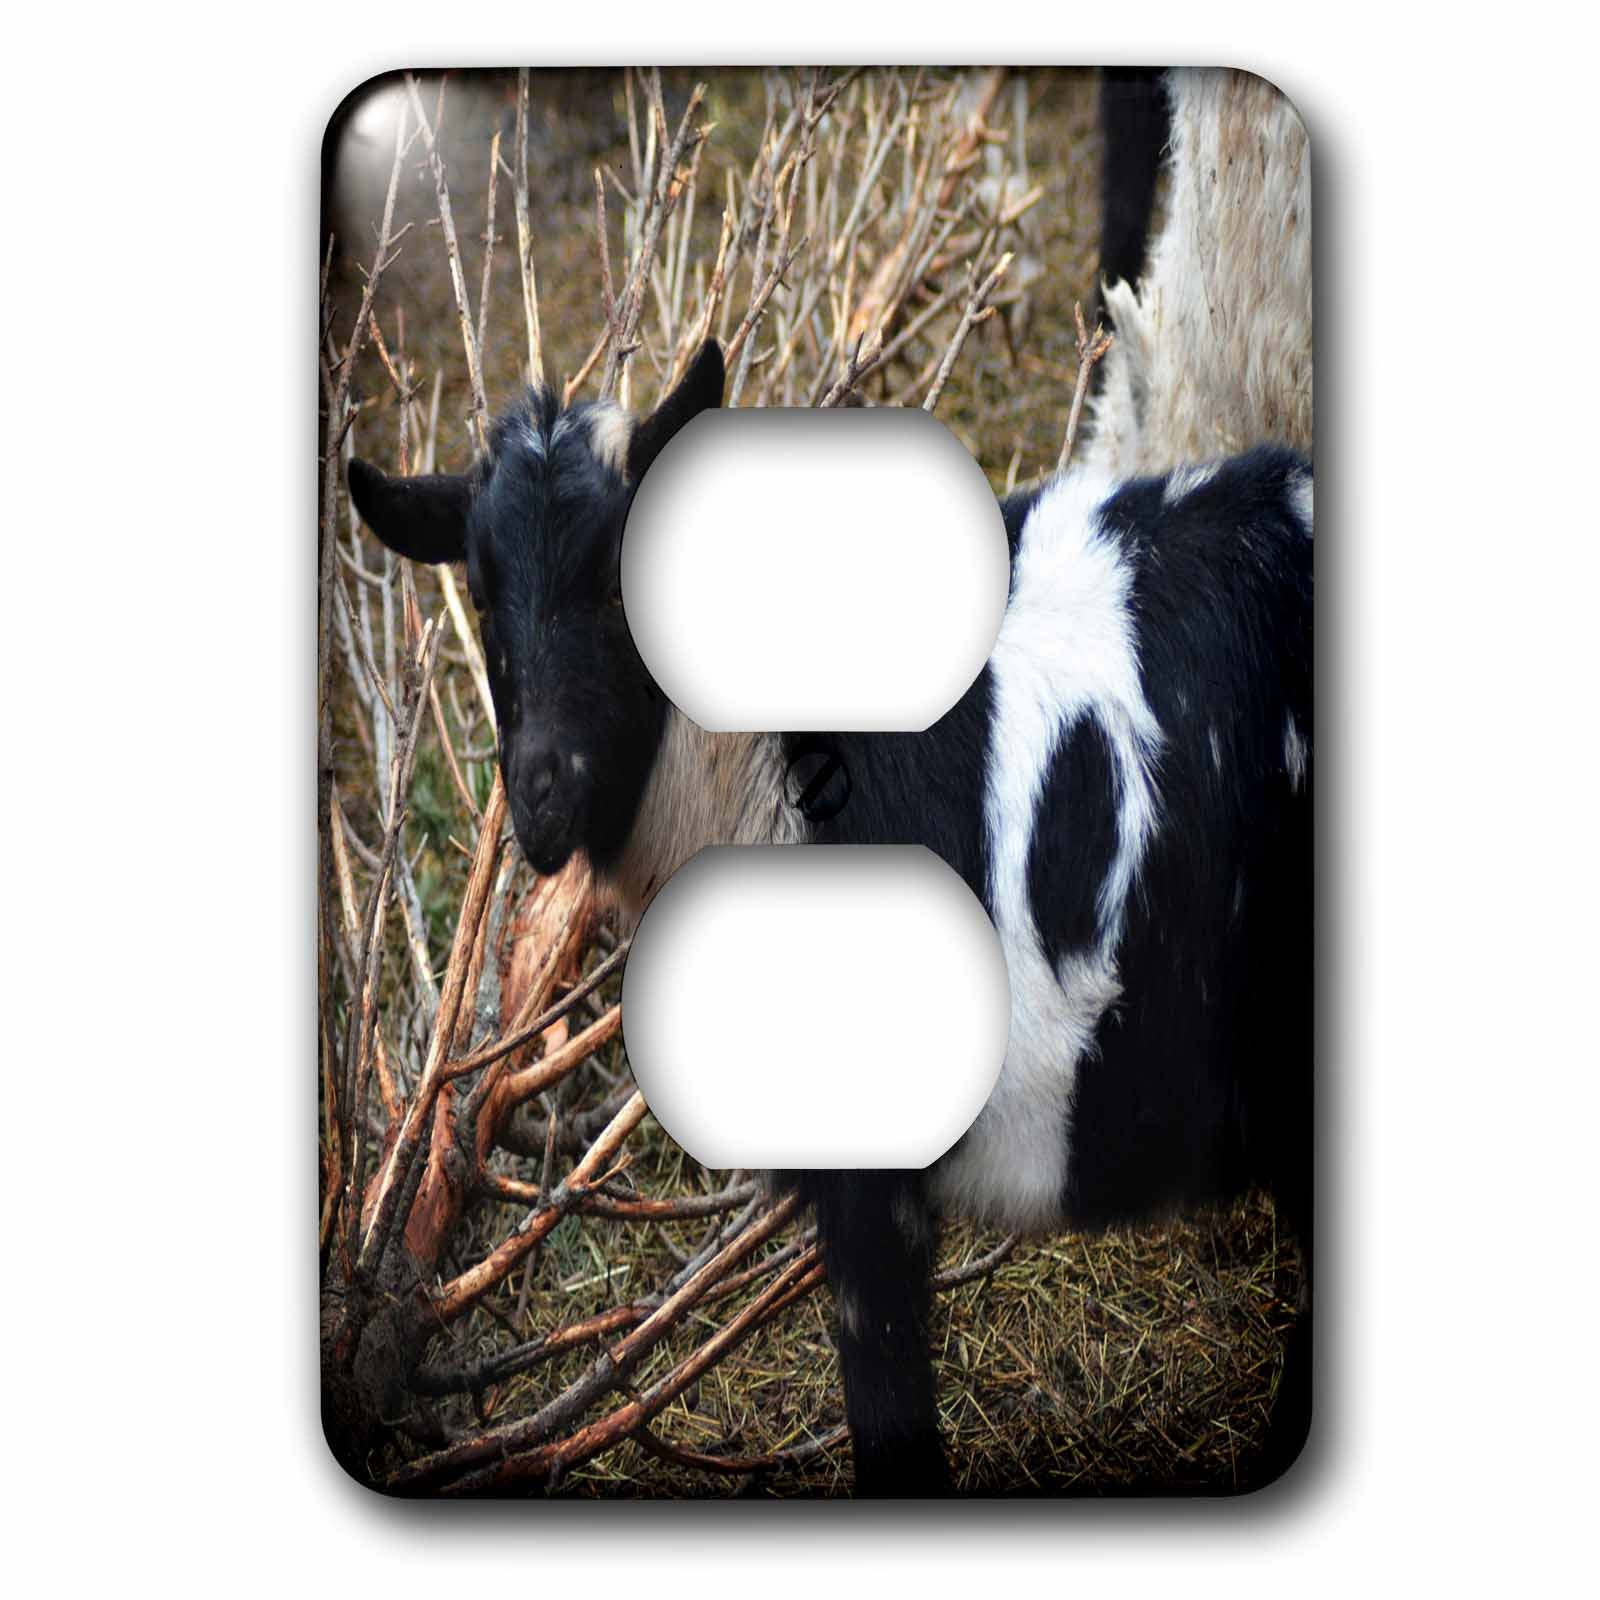 3dRose WhiteOaks Photography and Artwork - Goats - Black Faced Goat is a photo of a goat with a black face - Light Switch Covers - 2 plug outlet cover (lsp_265341_6)